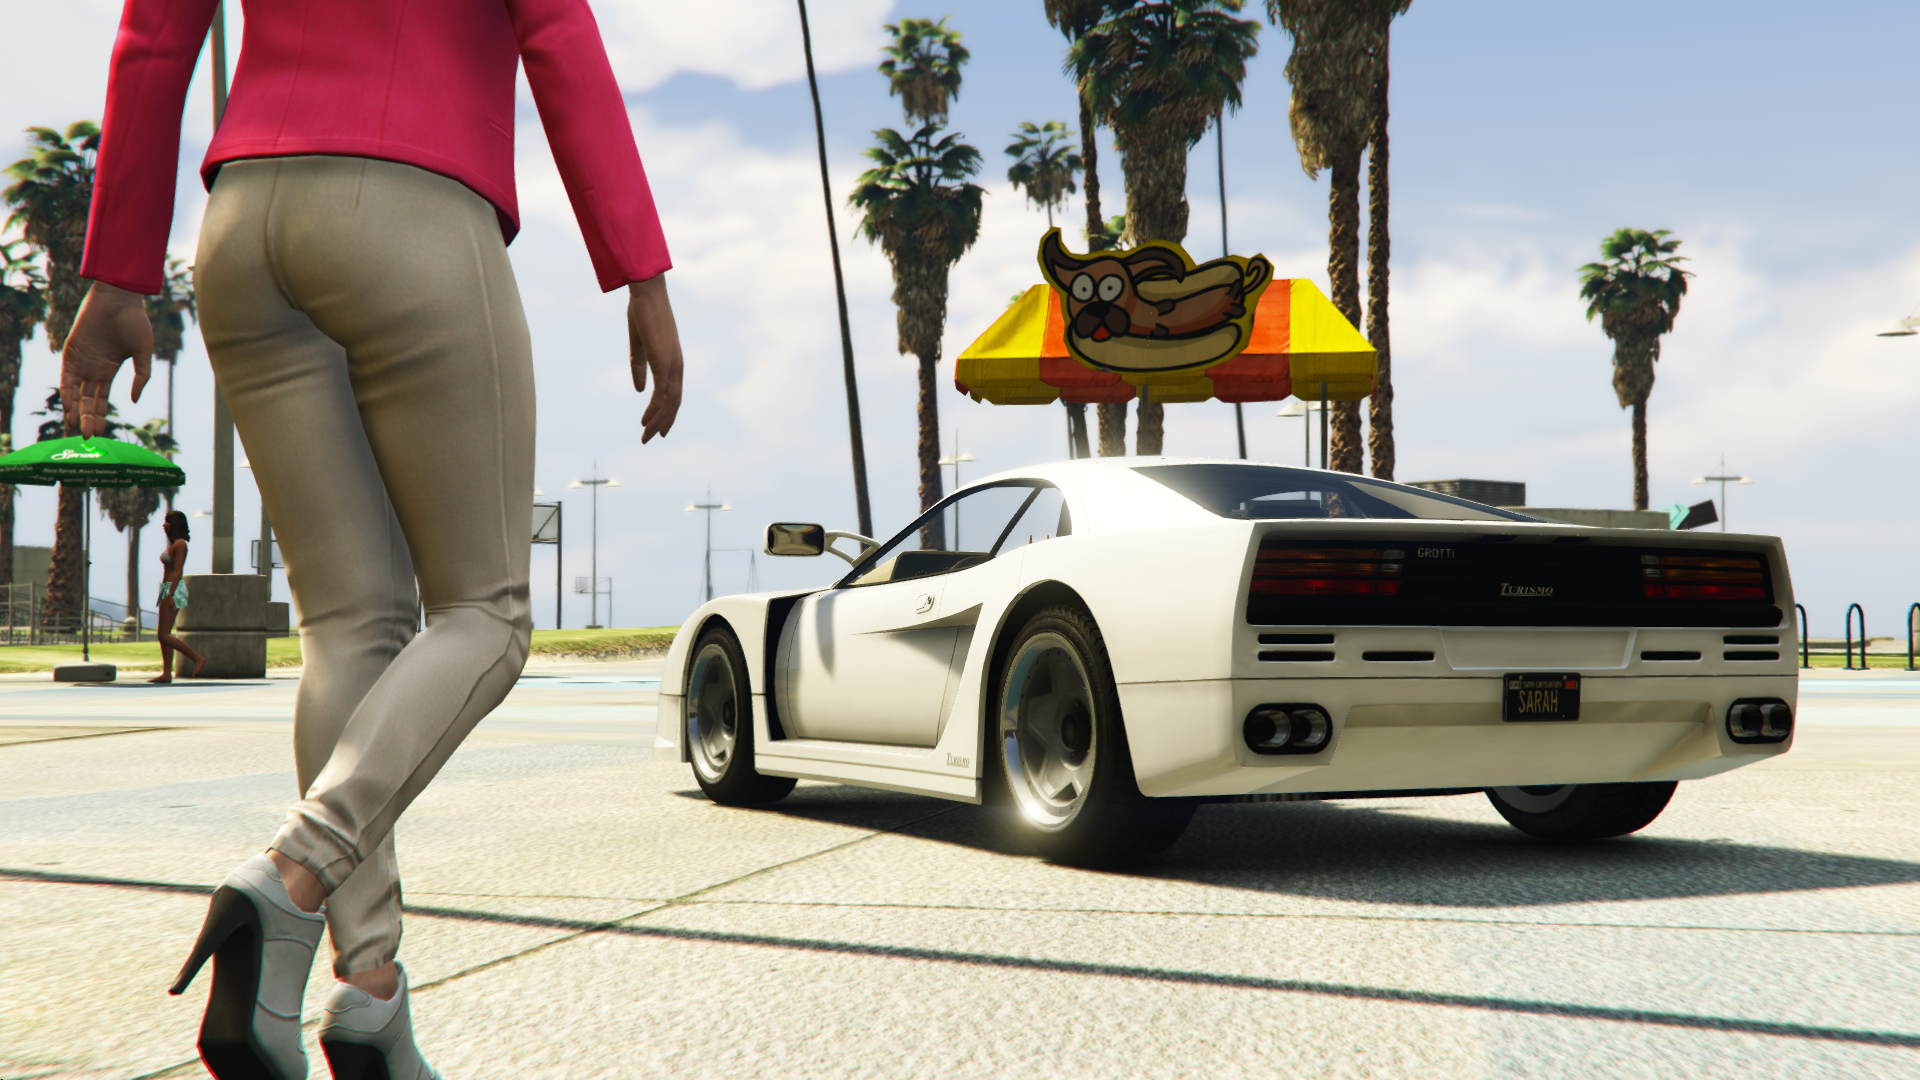 GTA V Screenshots (Official)   - Page 6 33019149153_e415b6040f_o